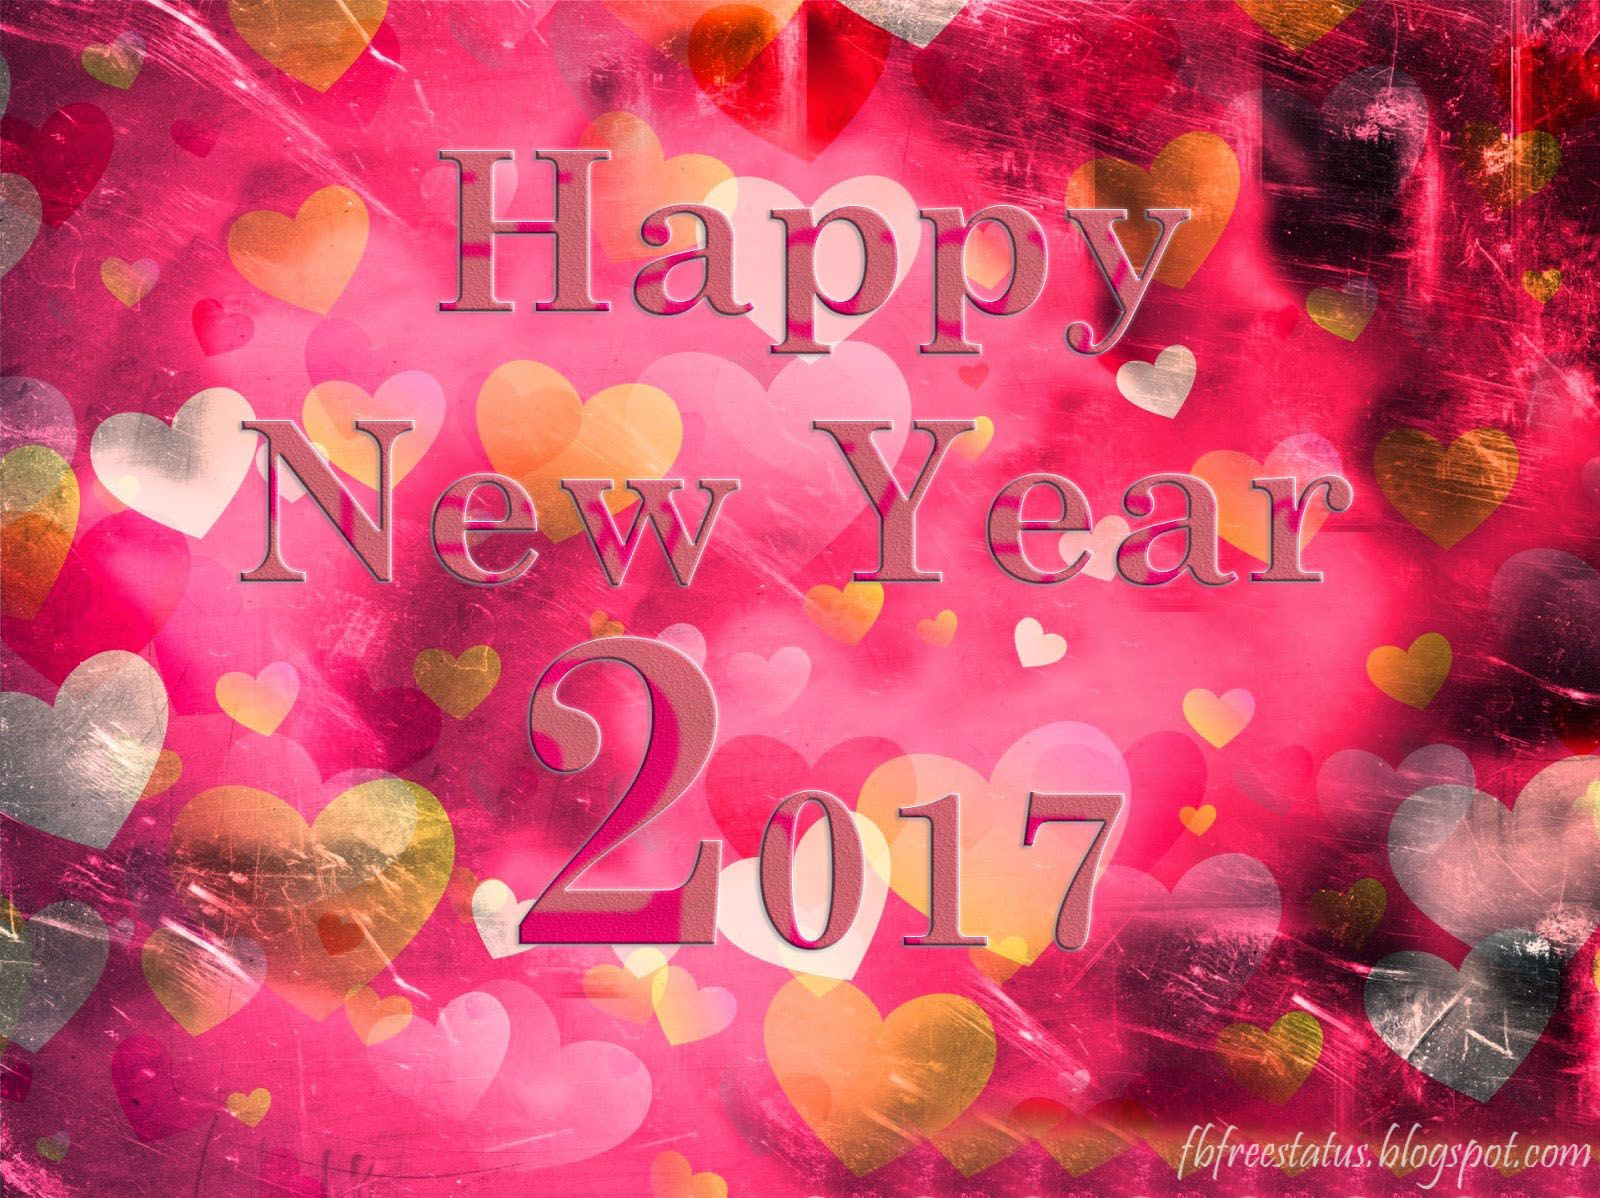 Free Download Happy New Year 2020 Hd Wallpapers Images And Wishes